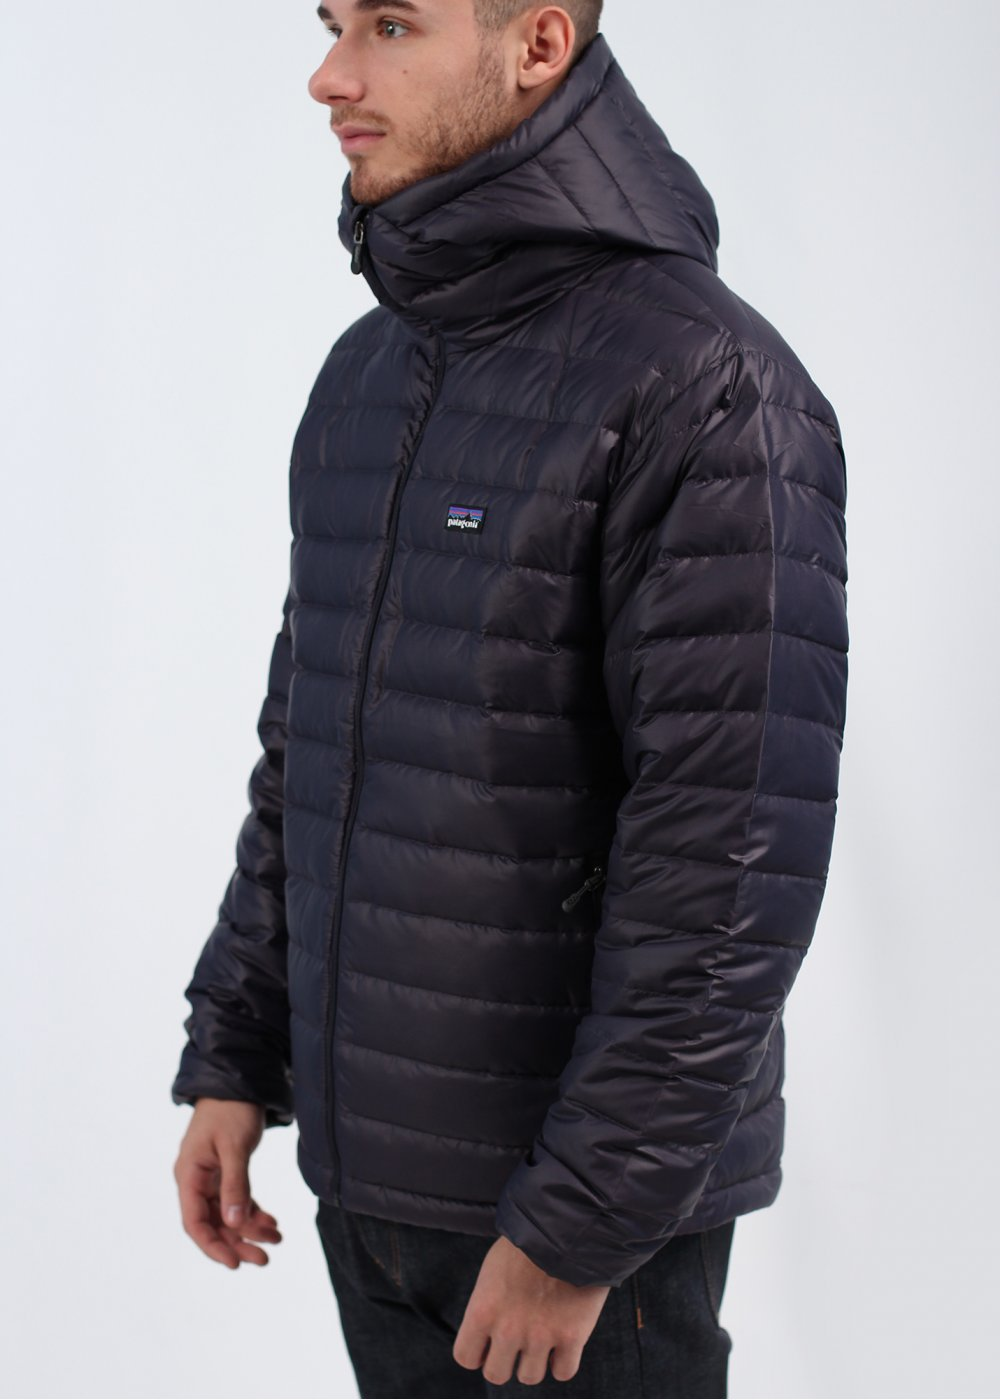 goose down jacket patagonia Black Friday 2016 Deals Sales &amp Cyber